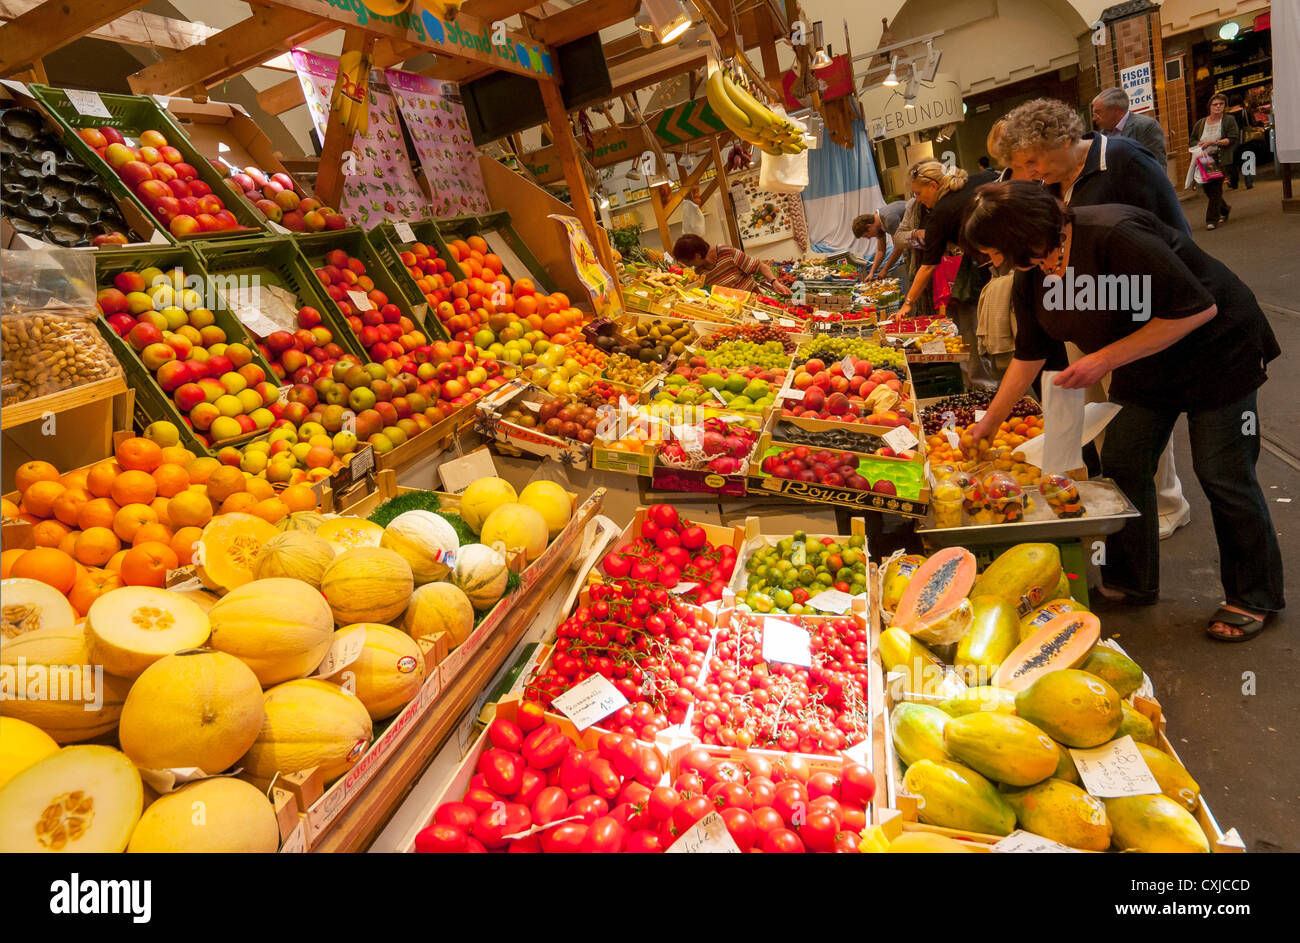 Fresh Fruits on Sale at Stuttgarter Markthalle, Stuttgart, Baden-Württemberg, Germany - Stock Image